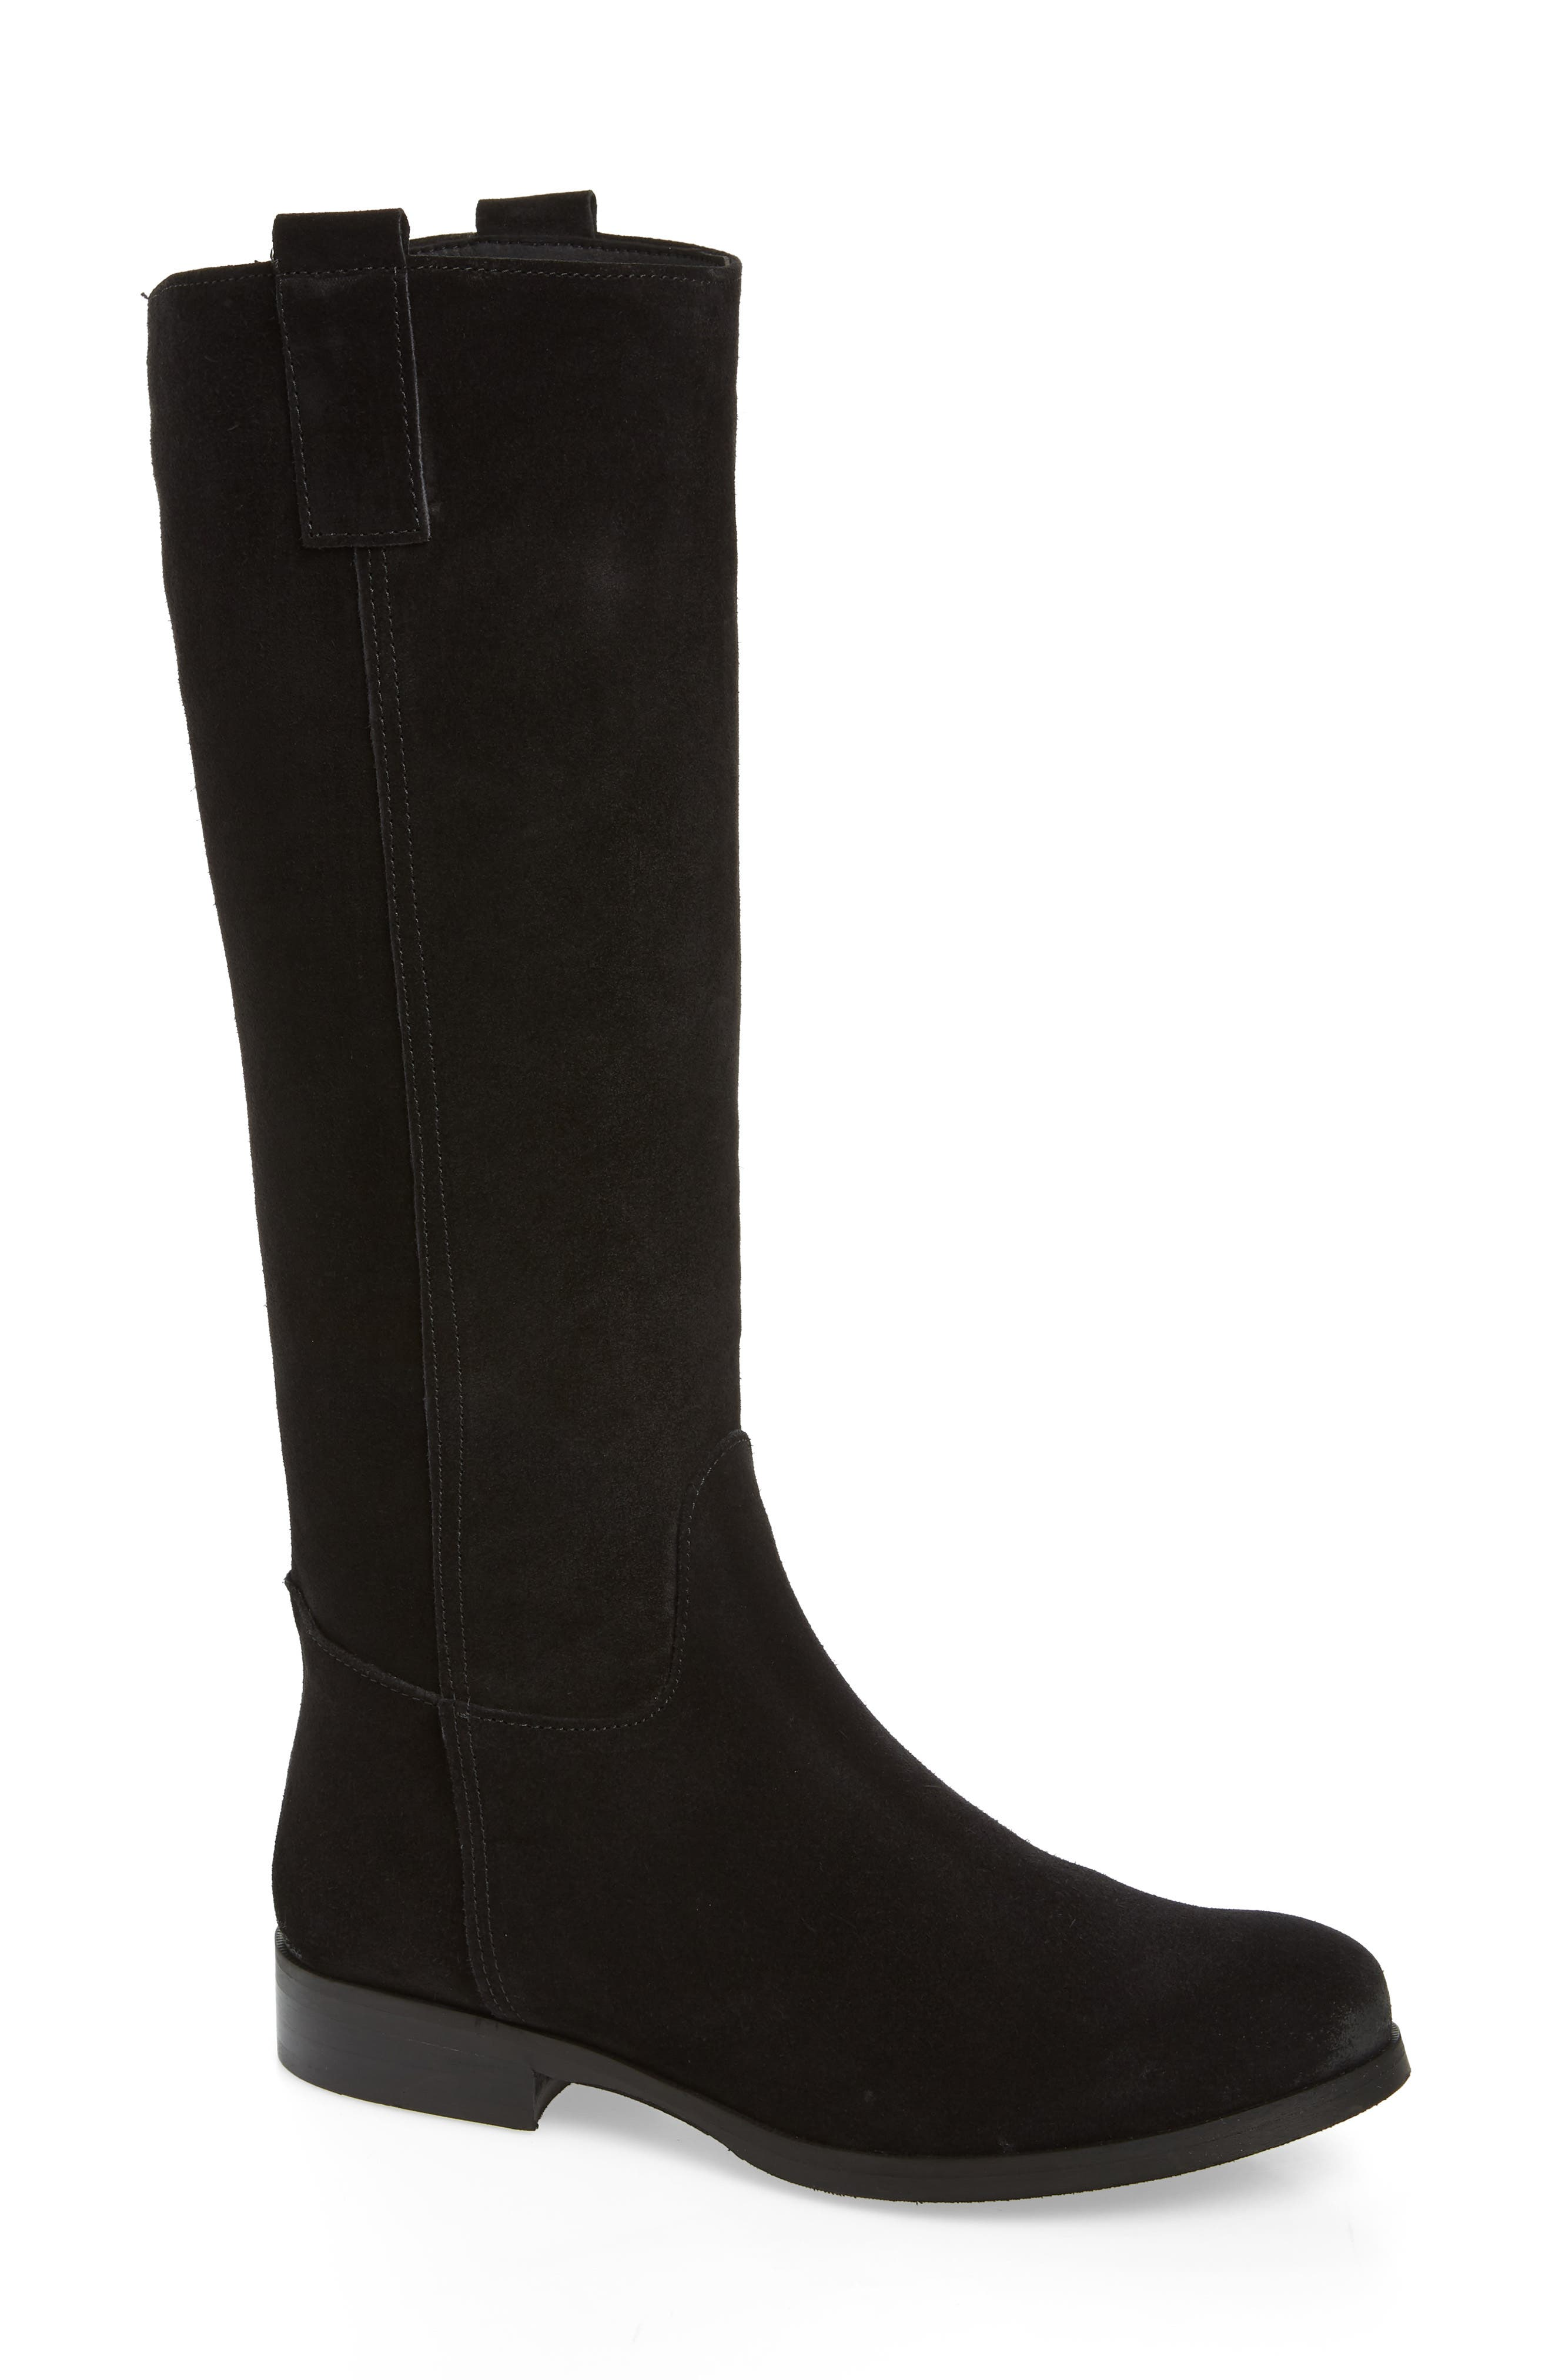 Cordani Benji Knee High Boot - Black